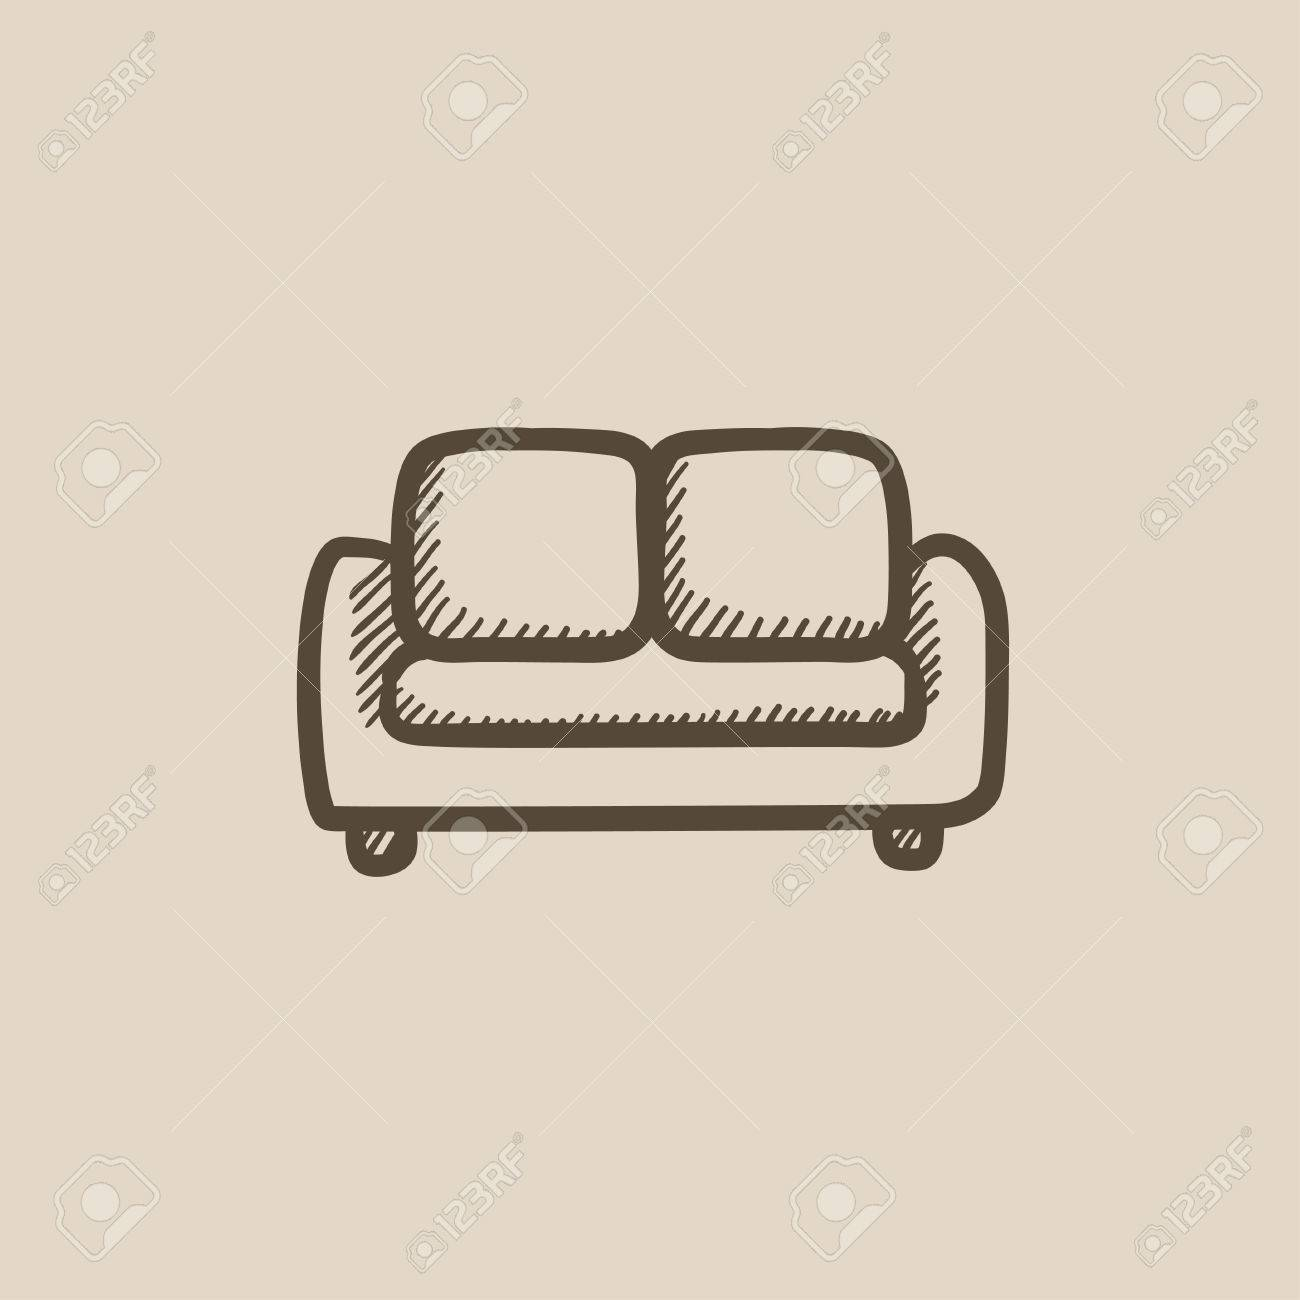 Sofa Vector Free Sofa Vector Sketch Icon Isolated On Background Hand Drawn Sofa